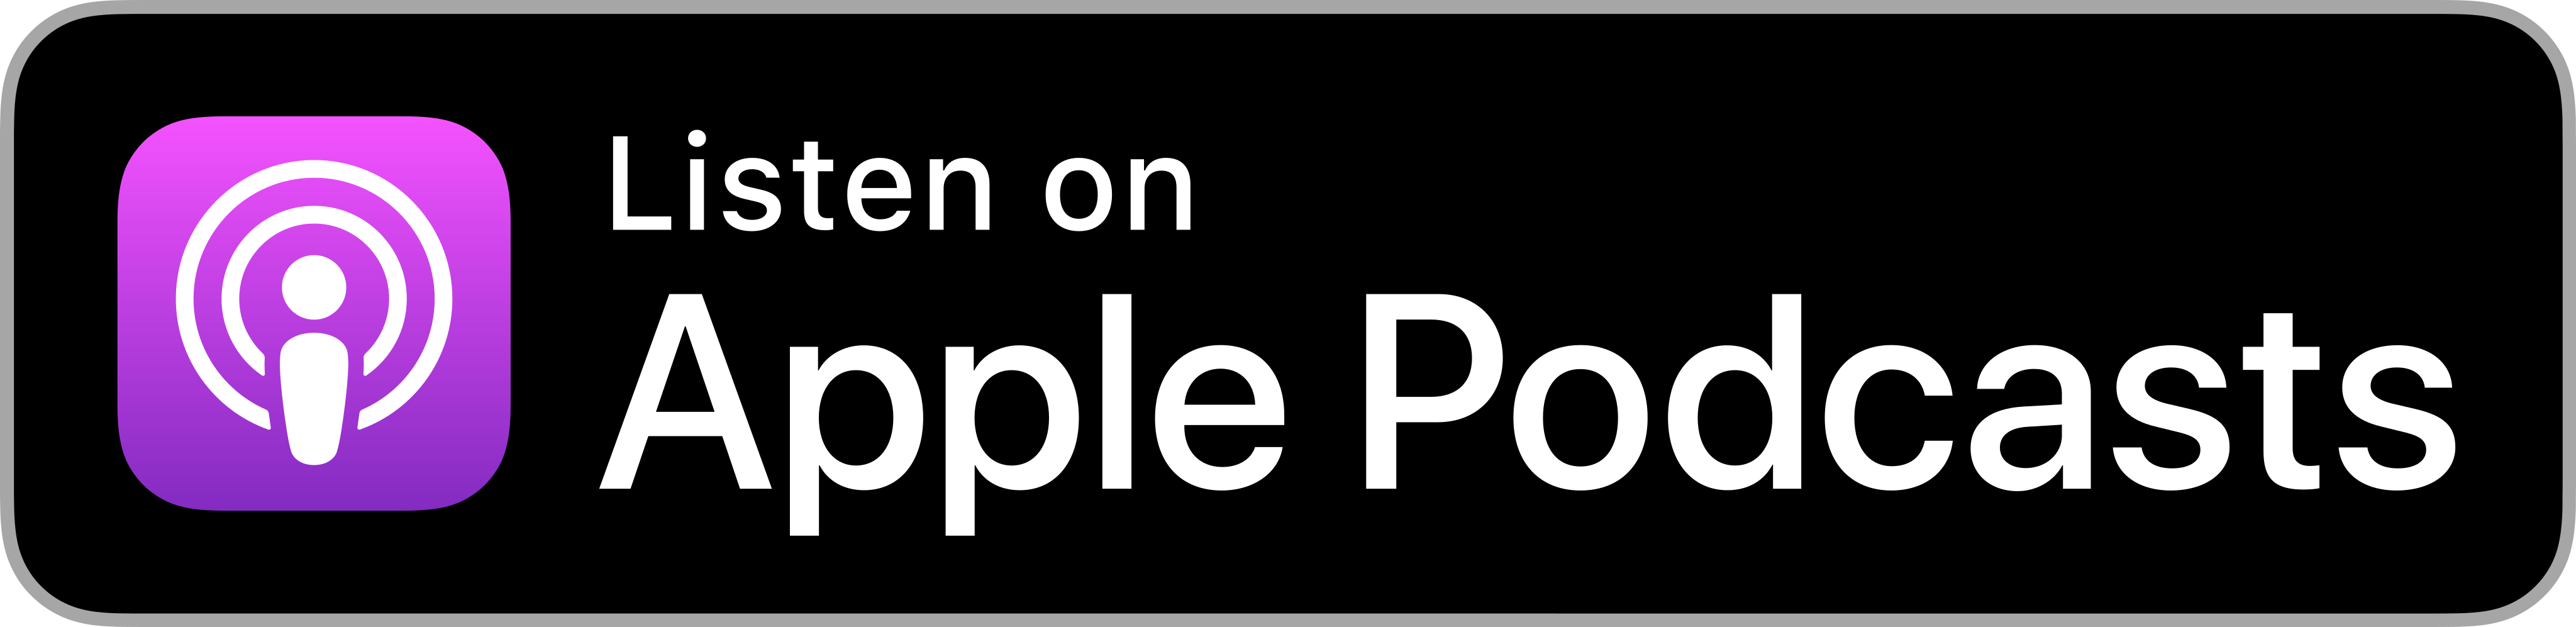 listen-on-apple-podcasts